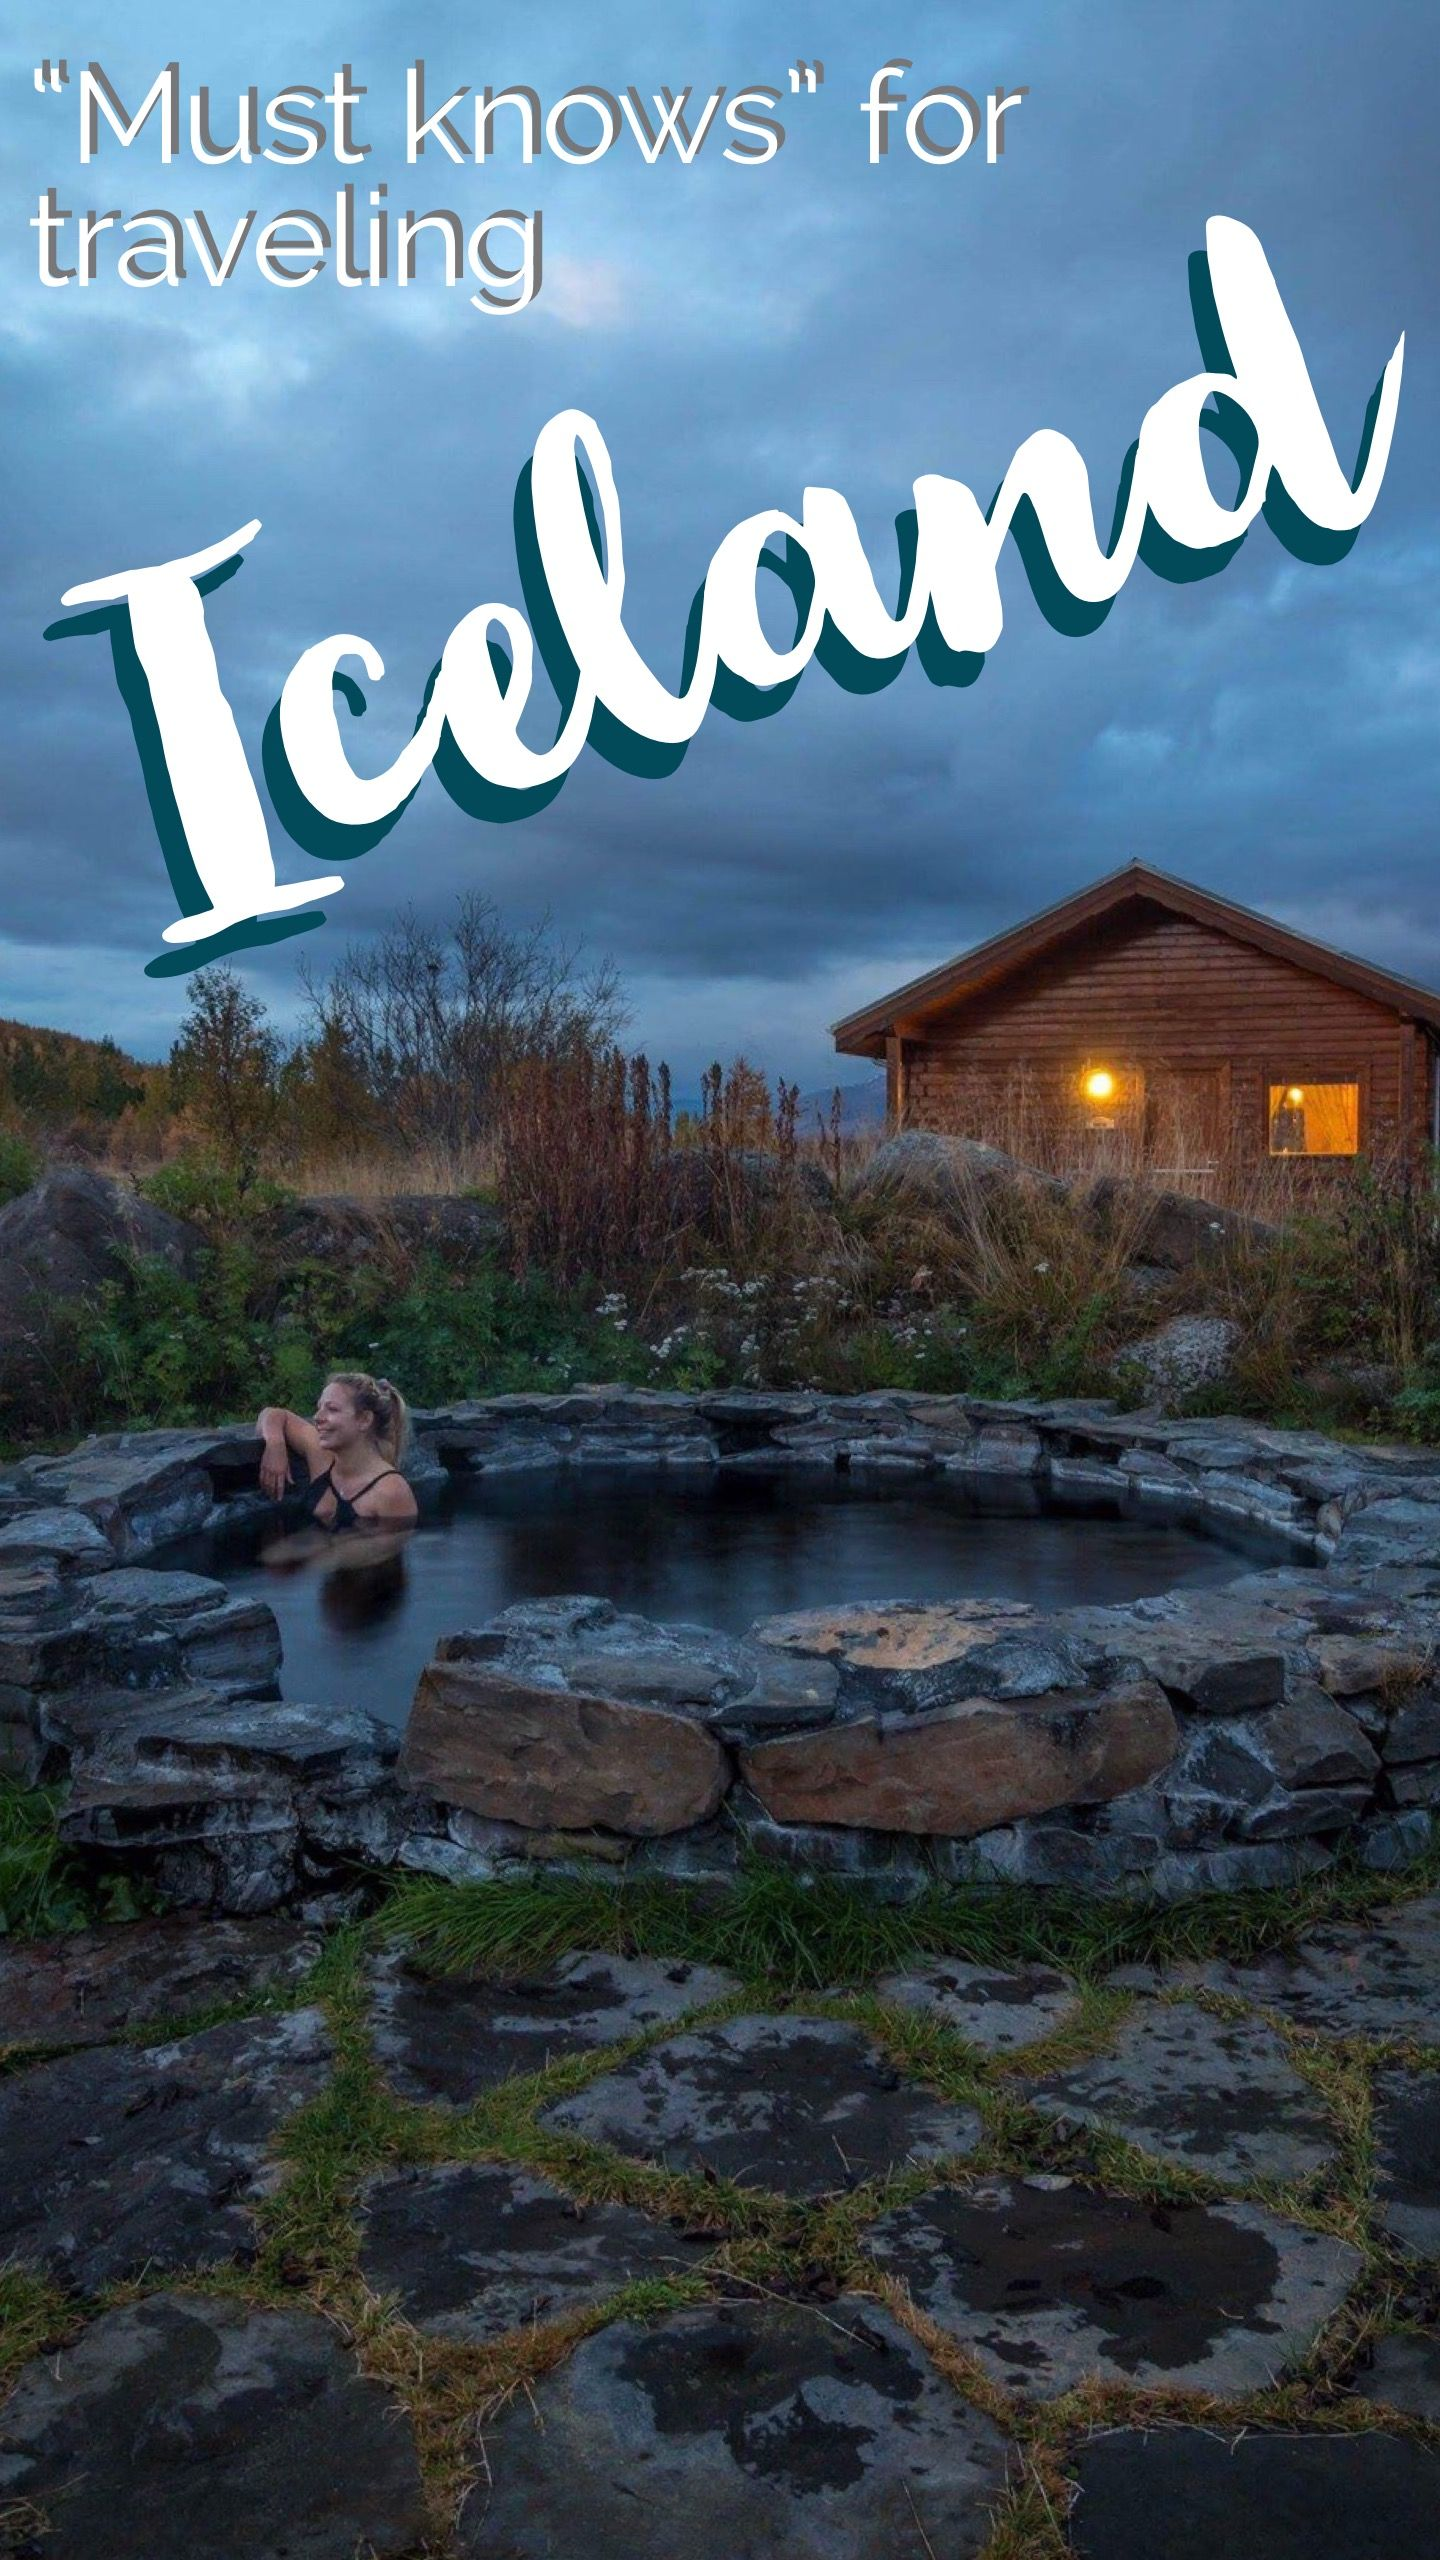 27 Camping In Iceland Tips To Know Before You Go 2020 Iceland